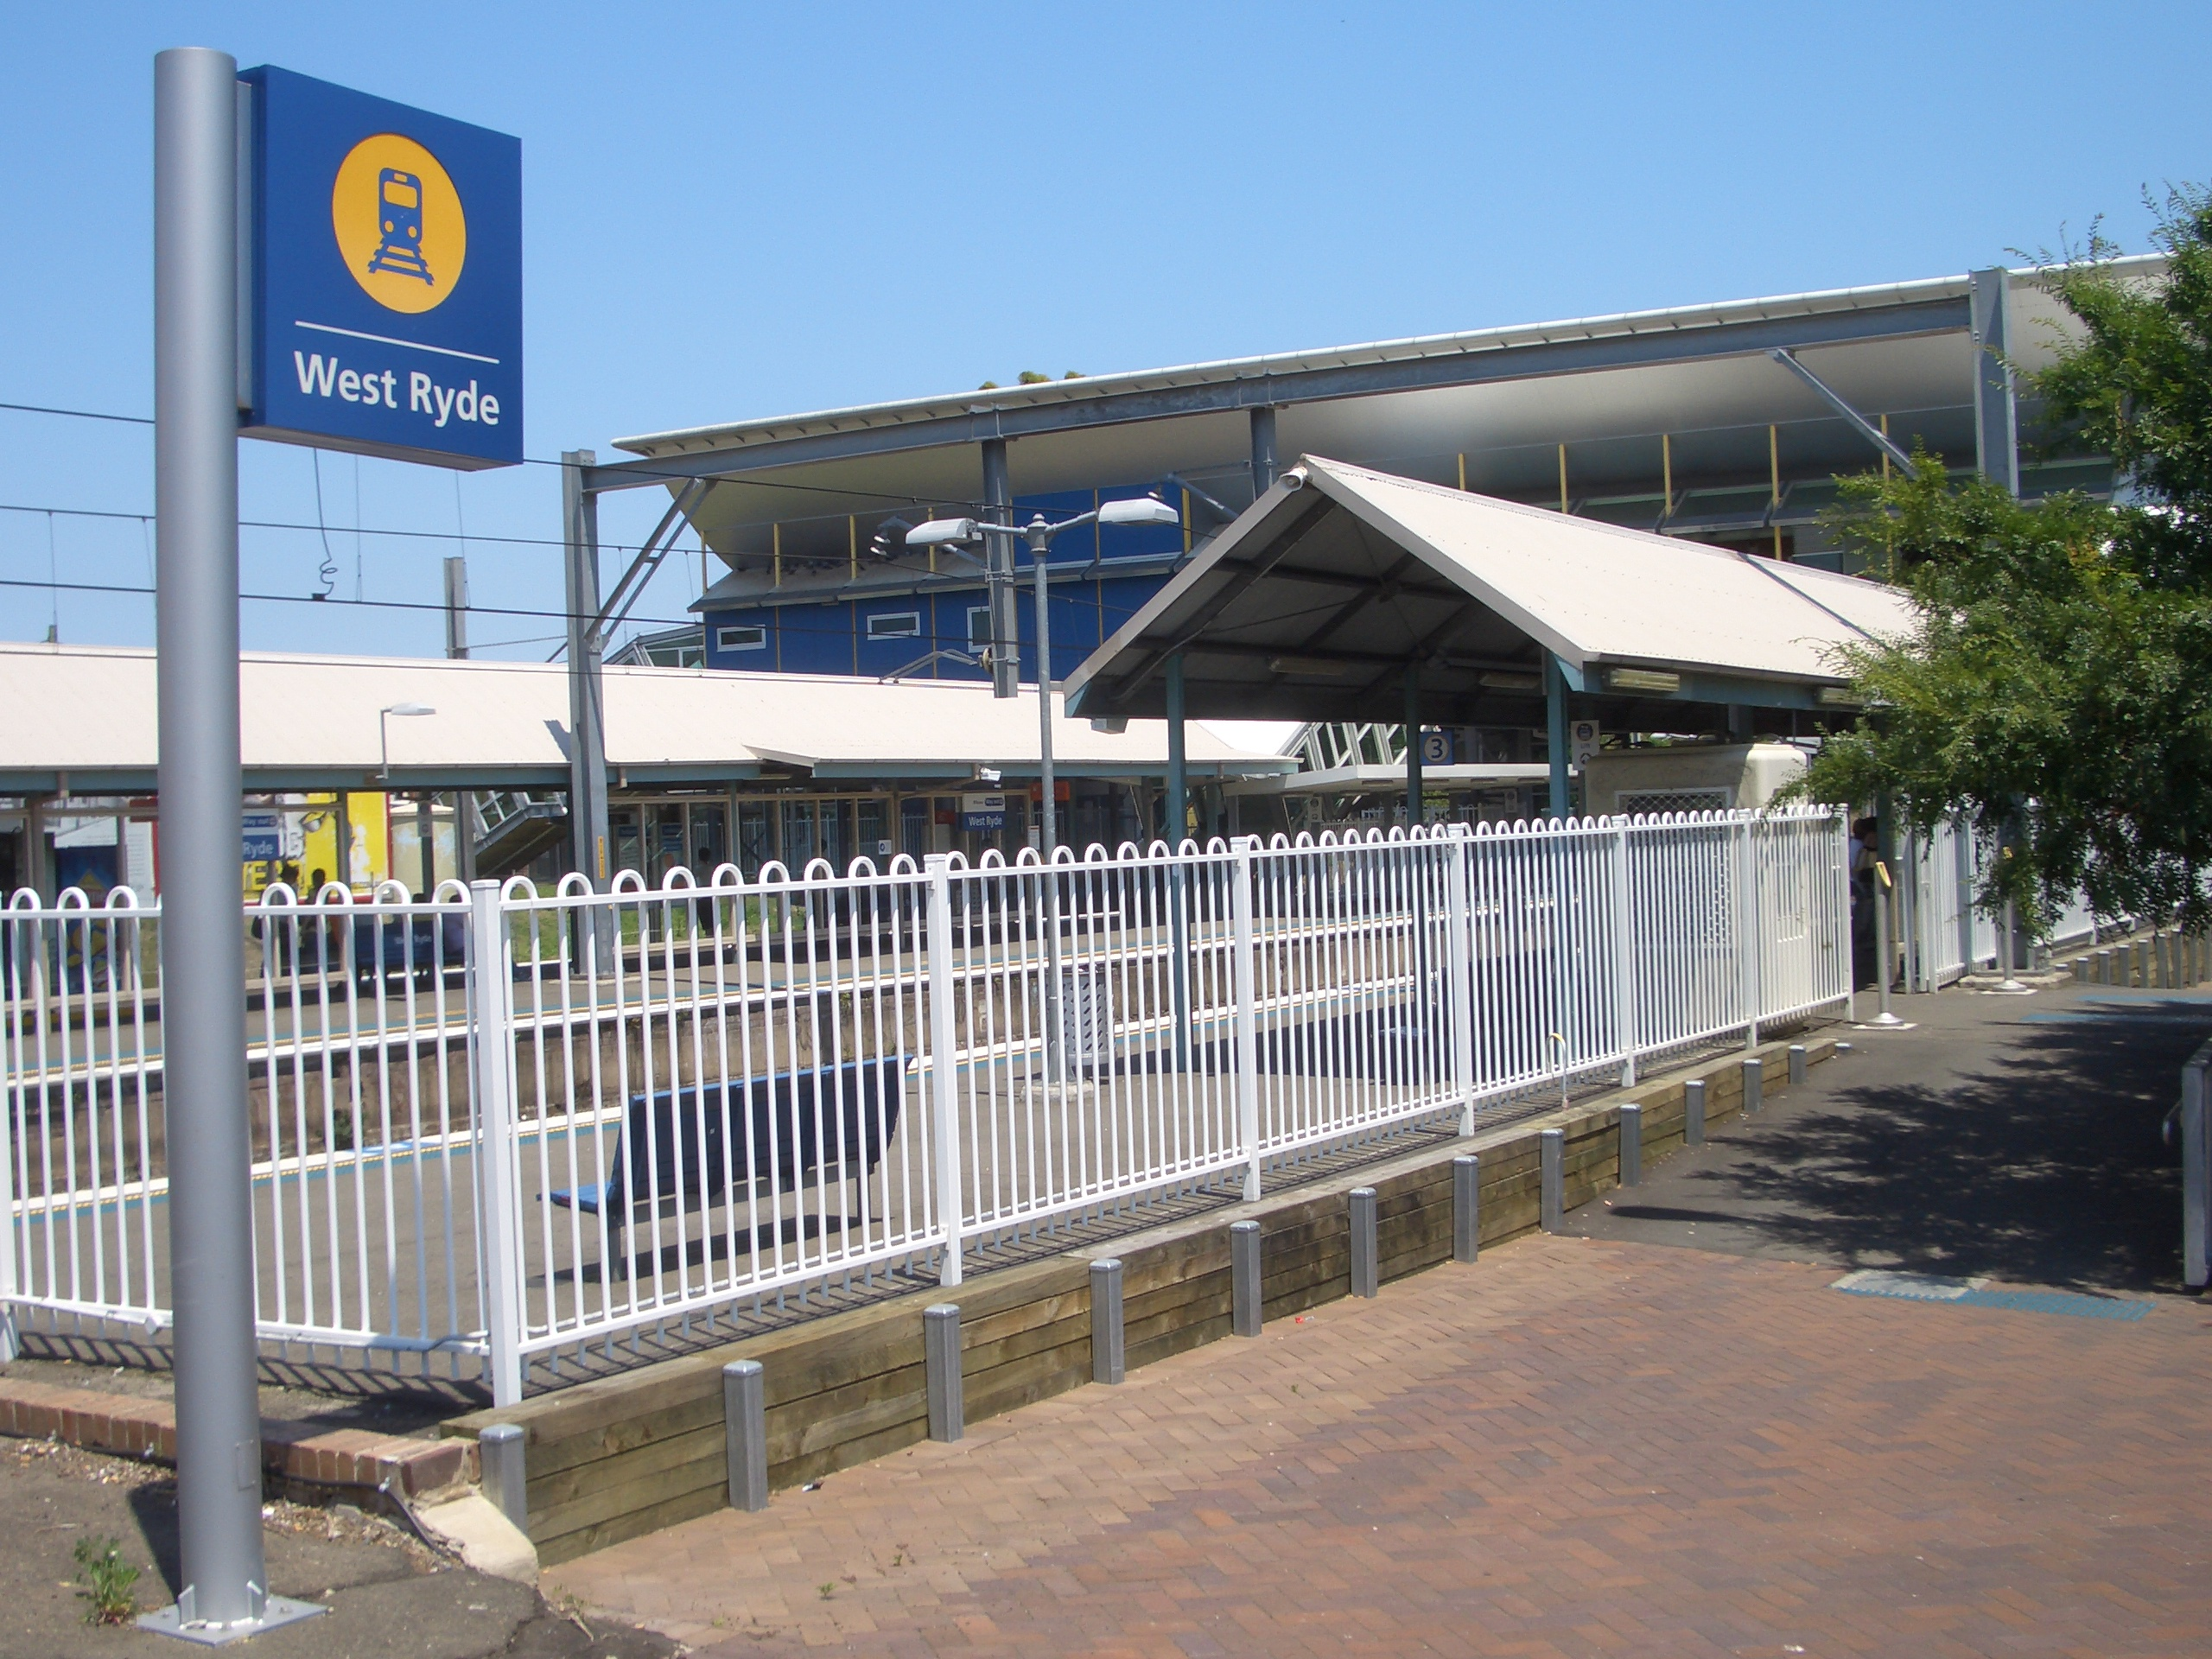 west_ryde_railway_station_2